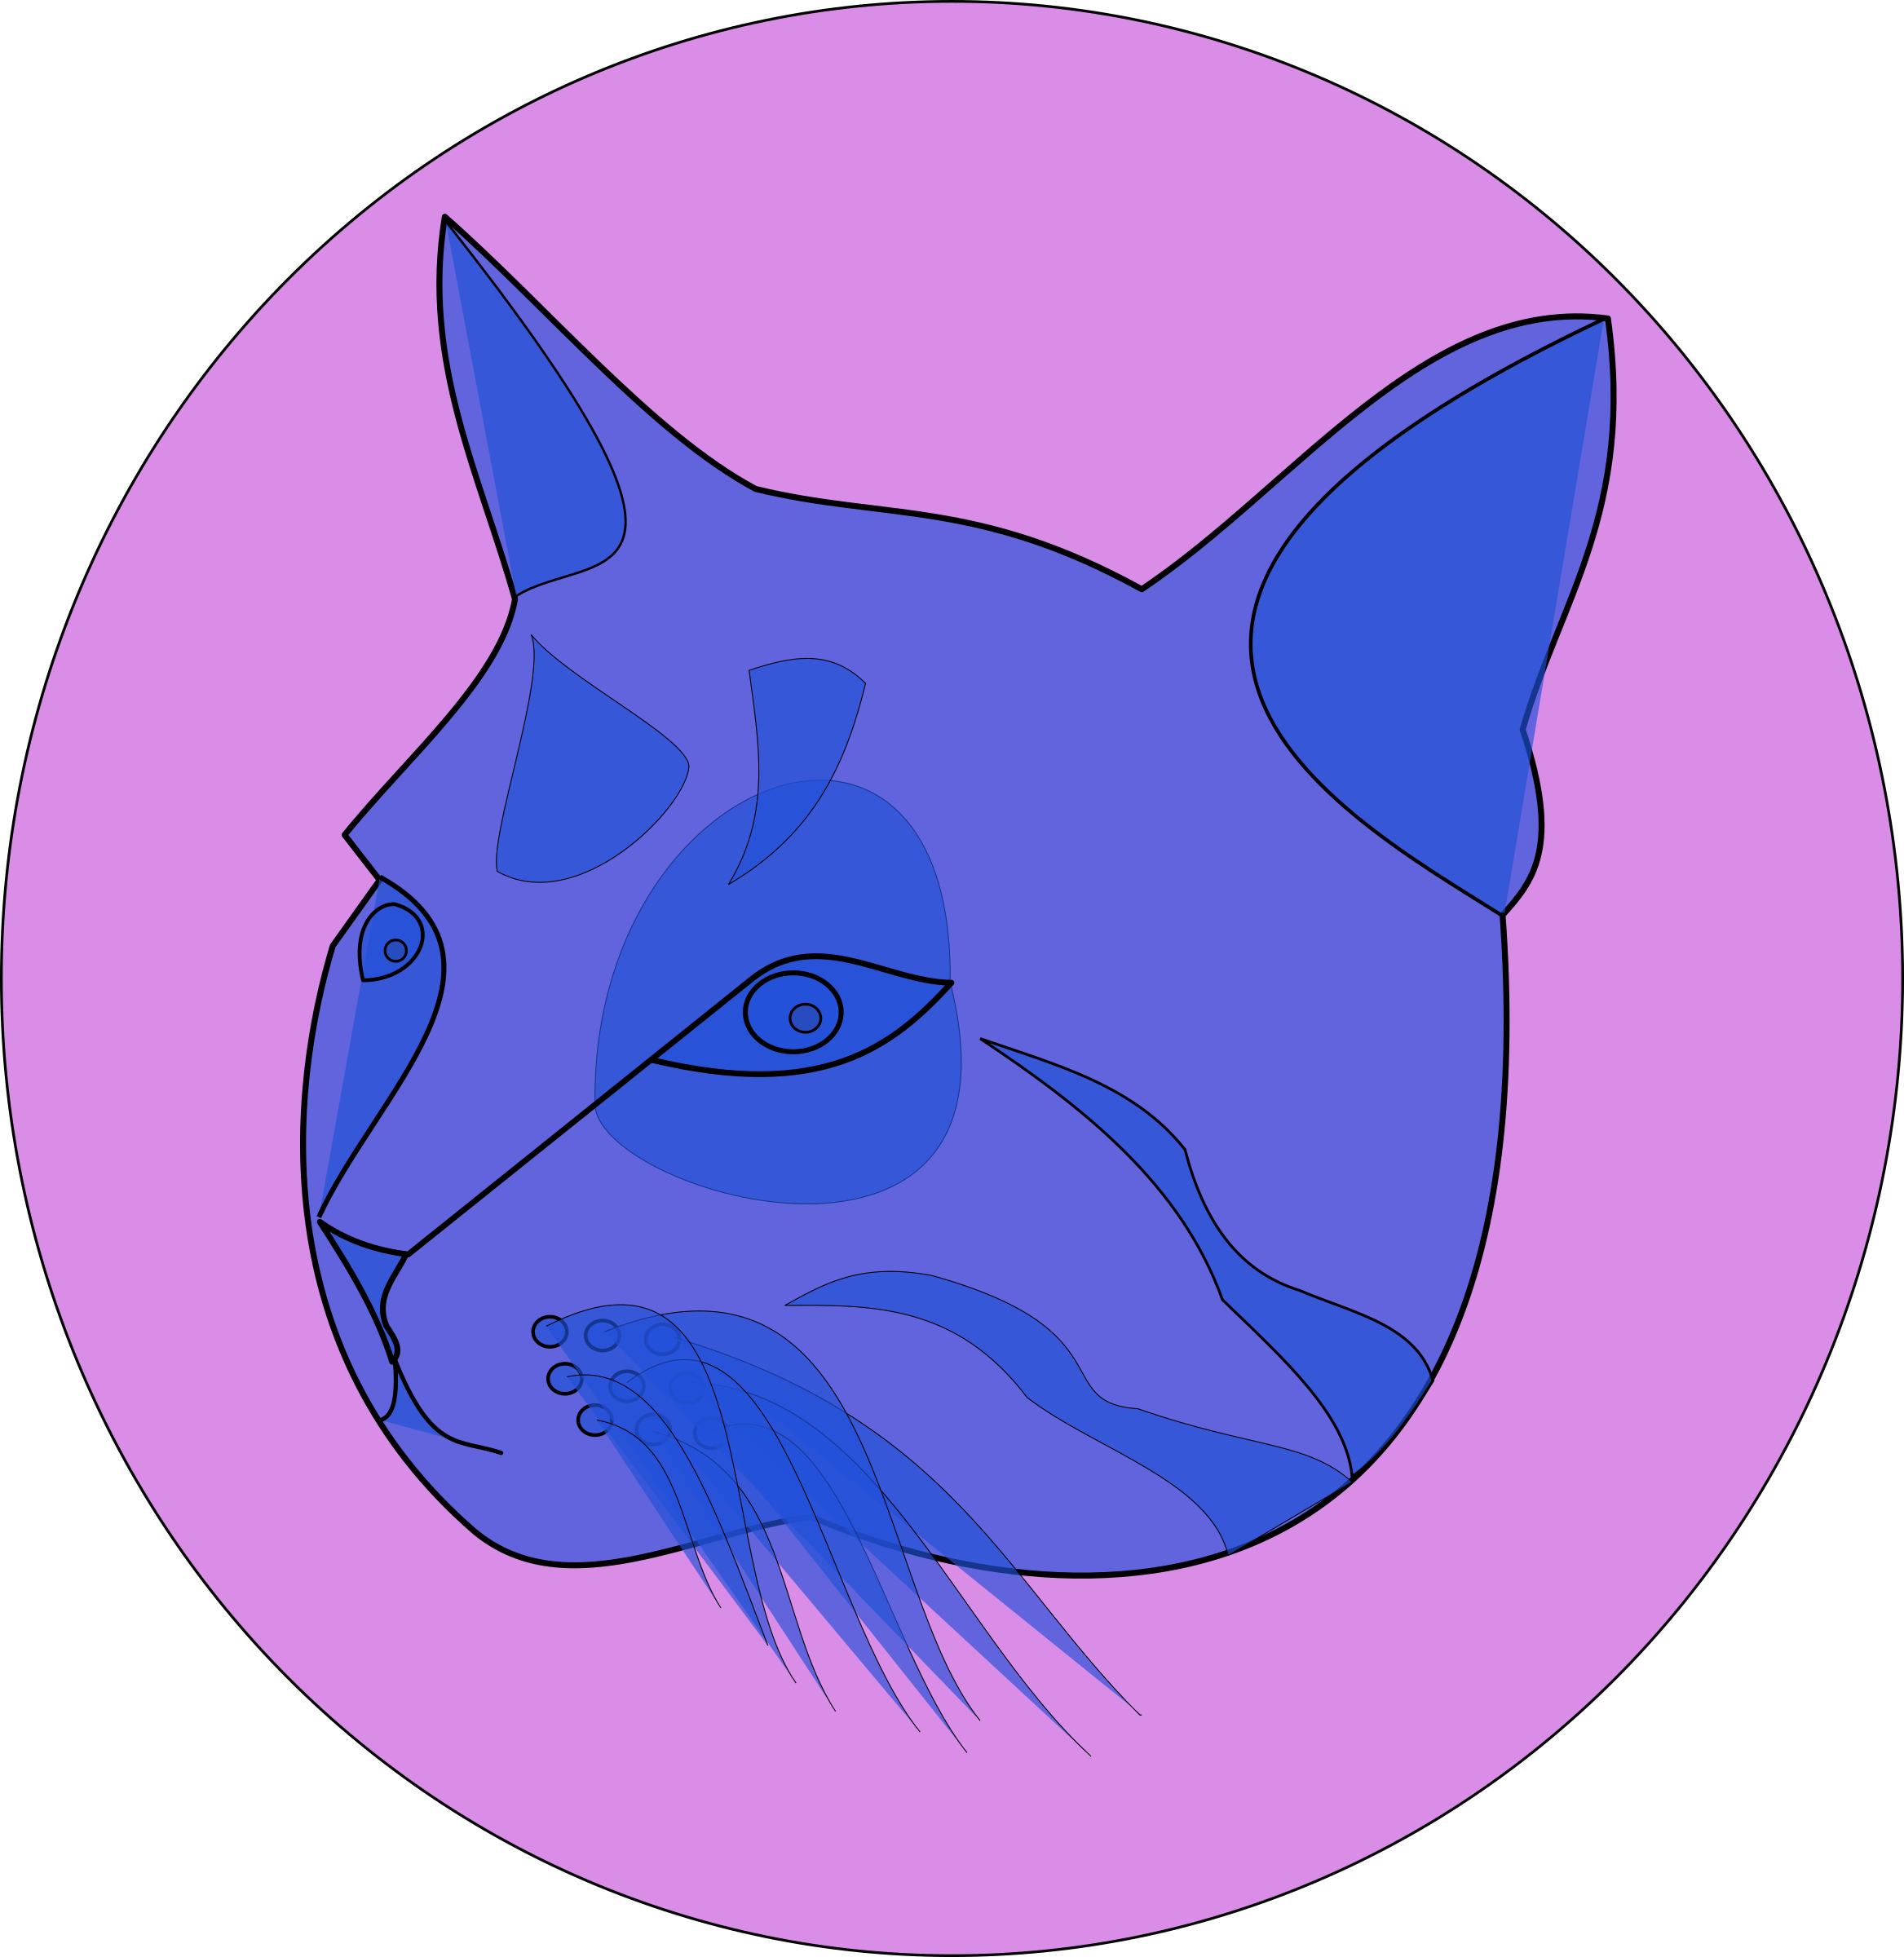 blue cat by themanwithoutsex